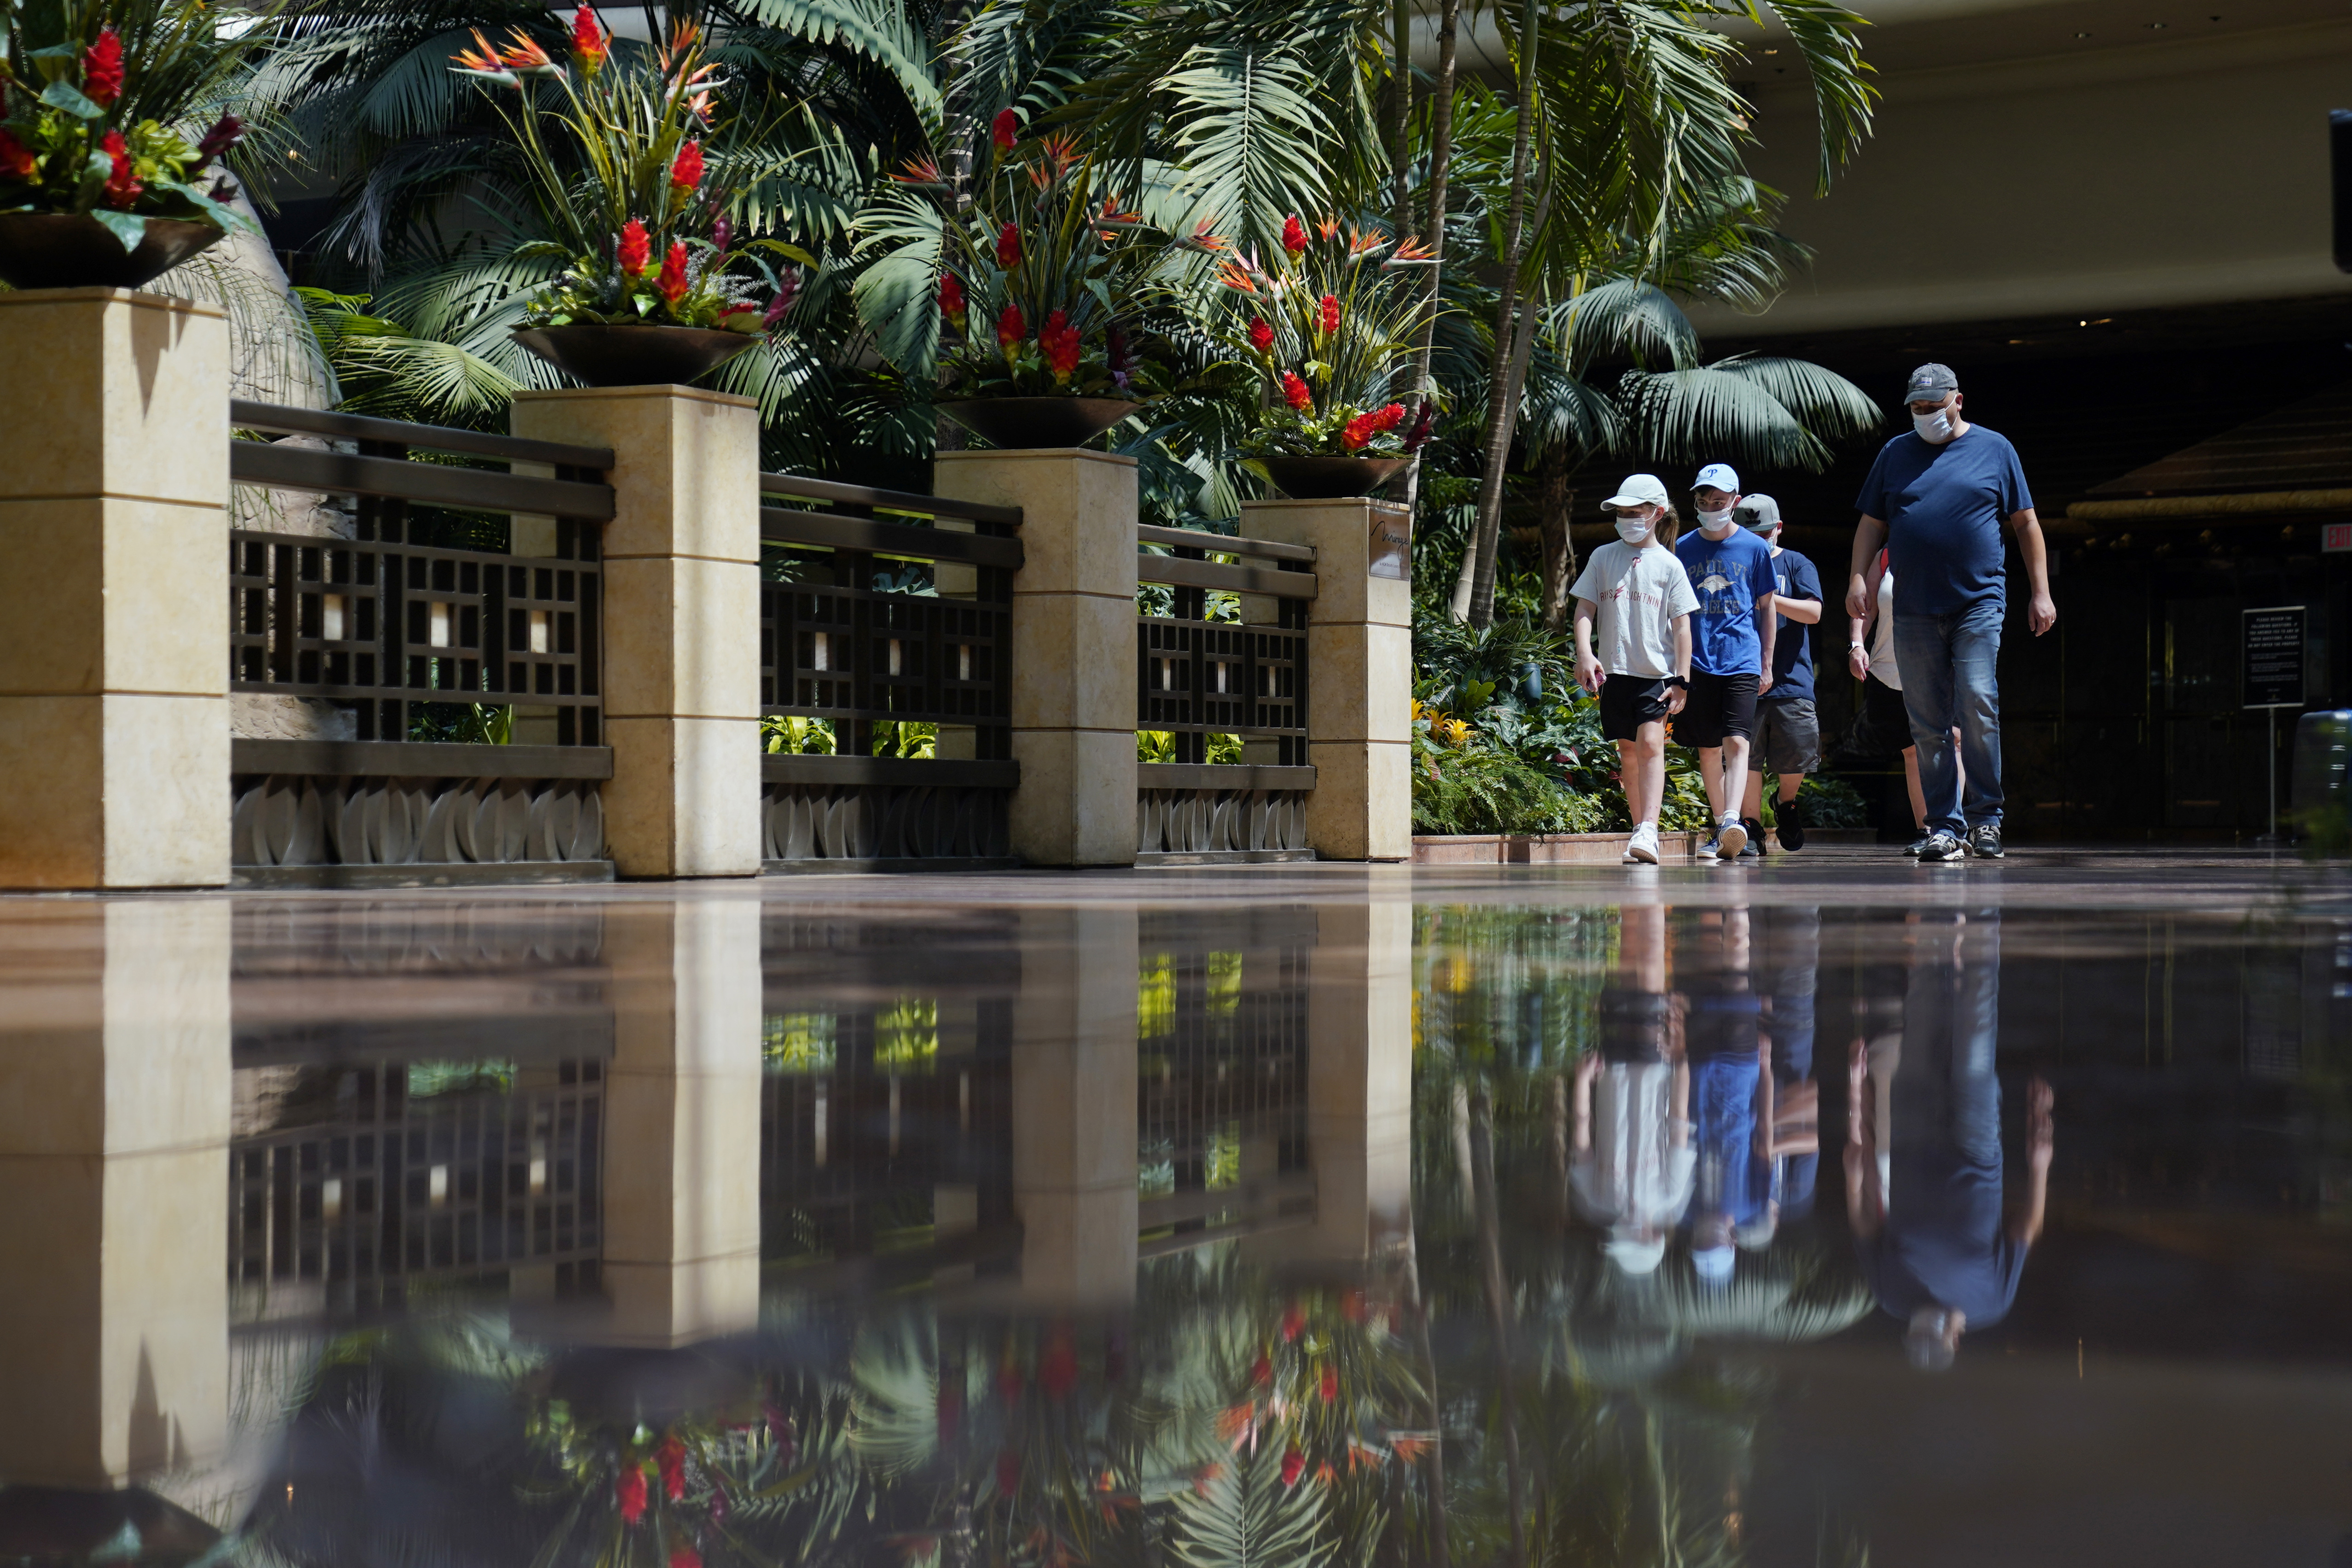 In this Aug. 27, 2020 file photo, people wearing facemasks walk through the atrium during the reopening of the Mirage hotel and casino in Las Vegas.